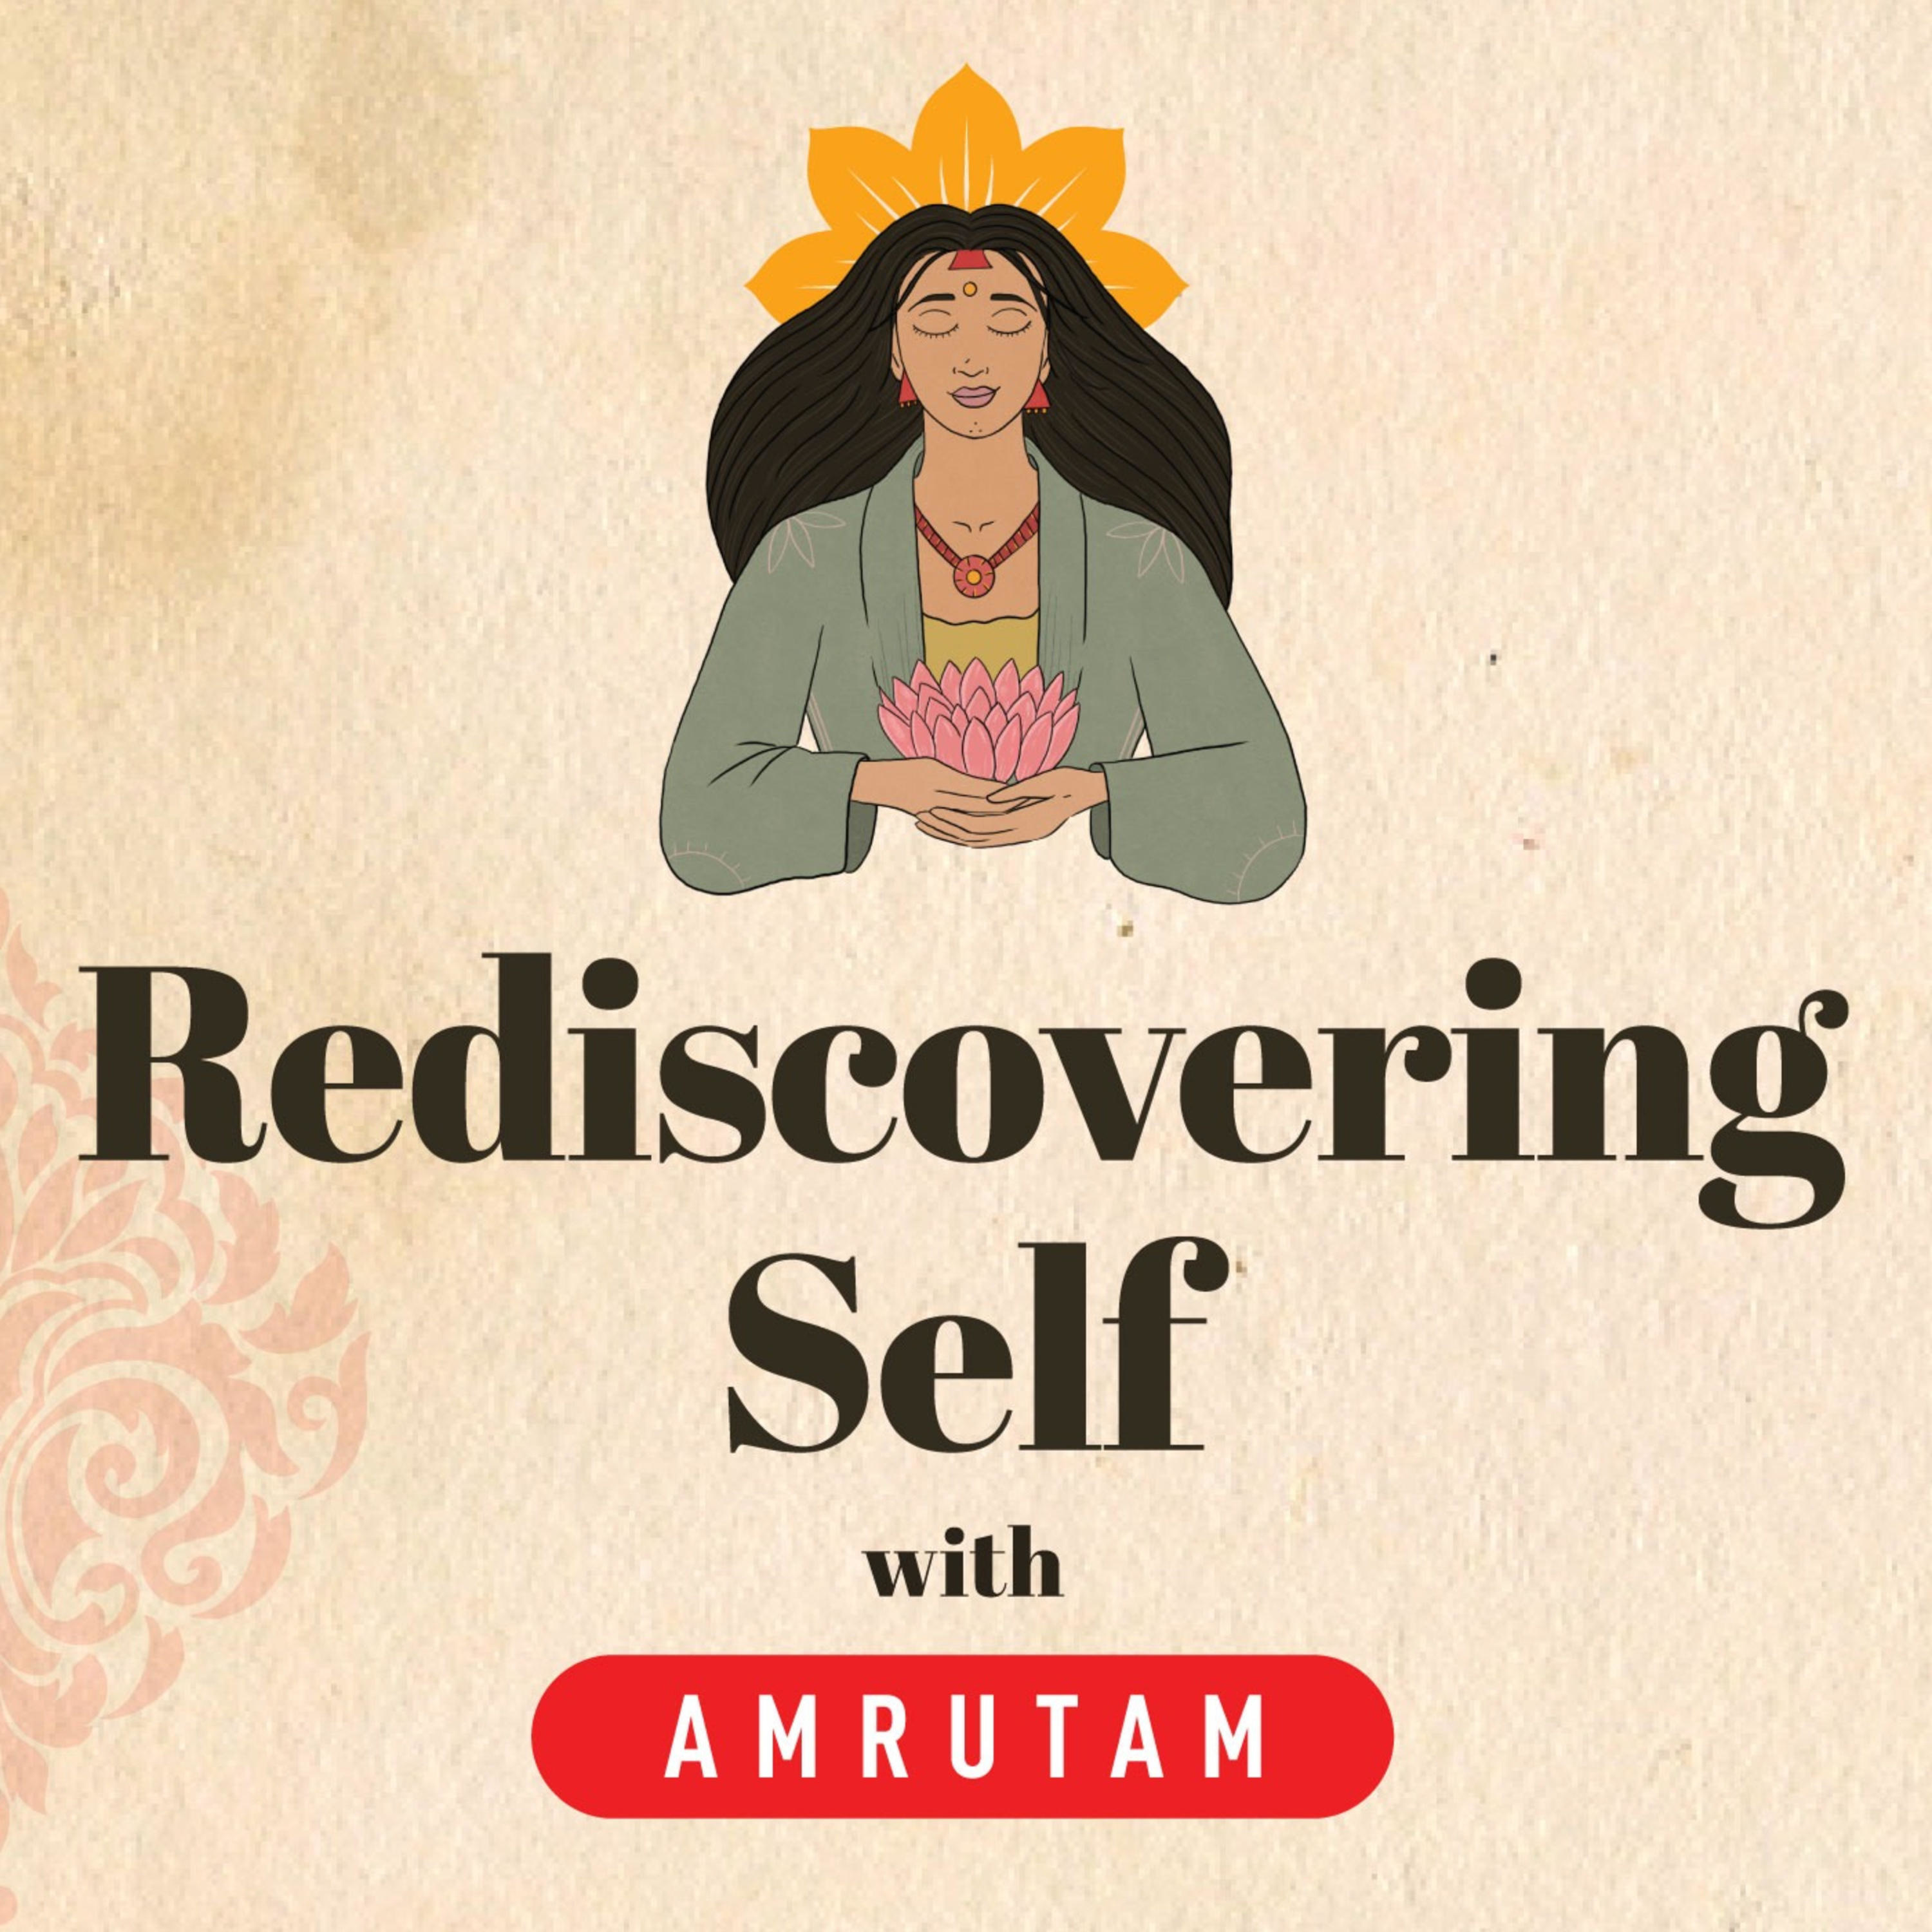 Rediscovering Self with Amrutam